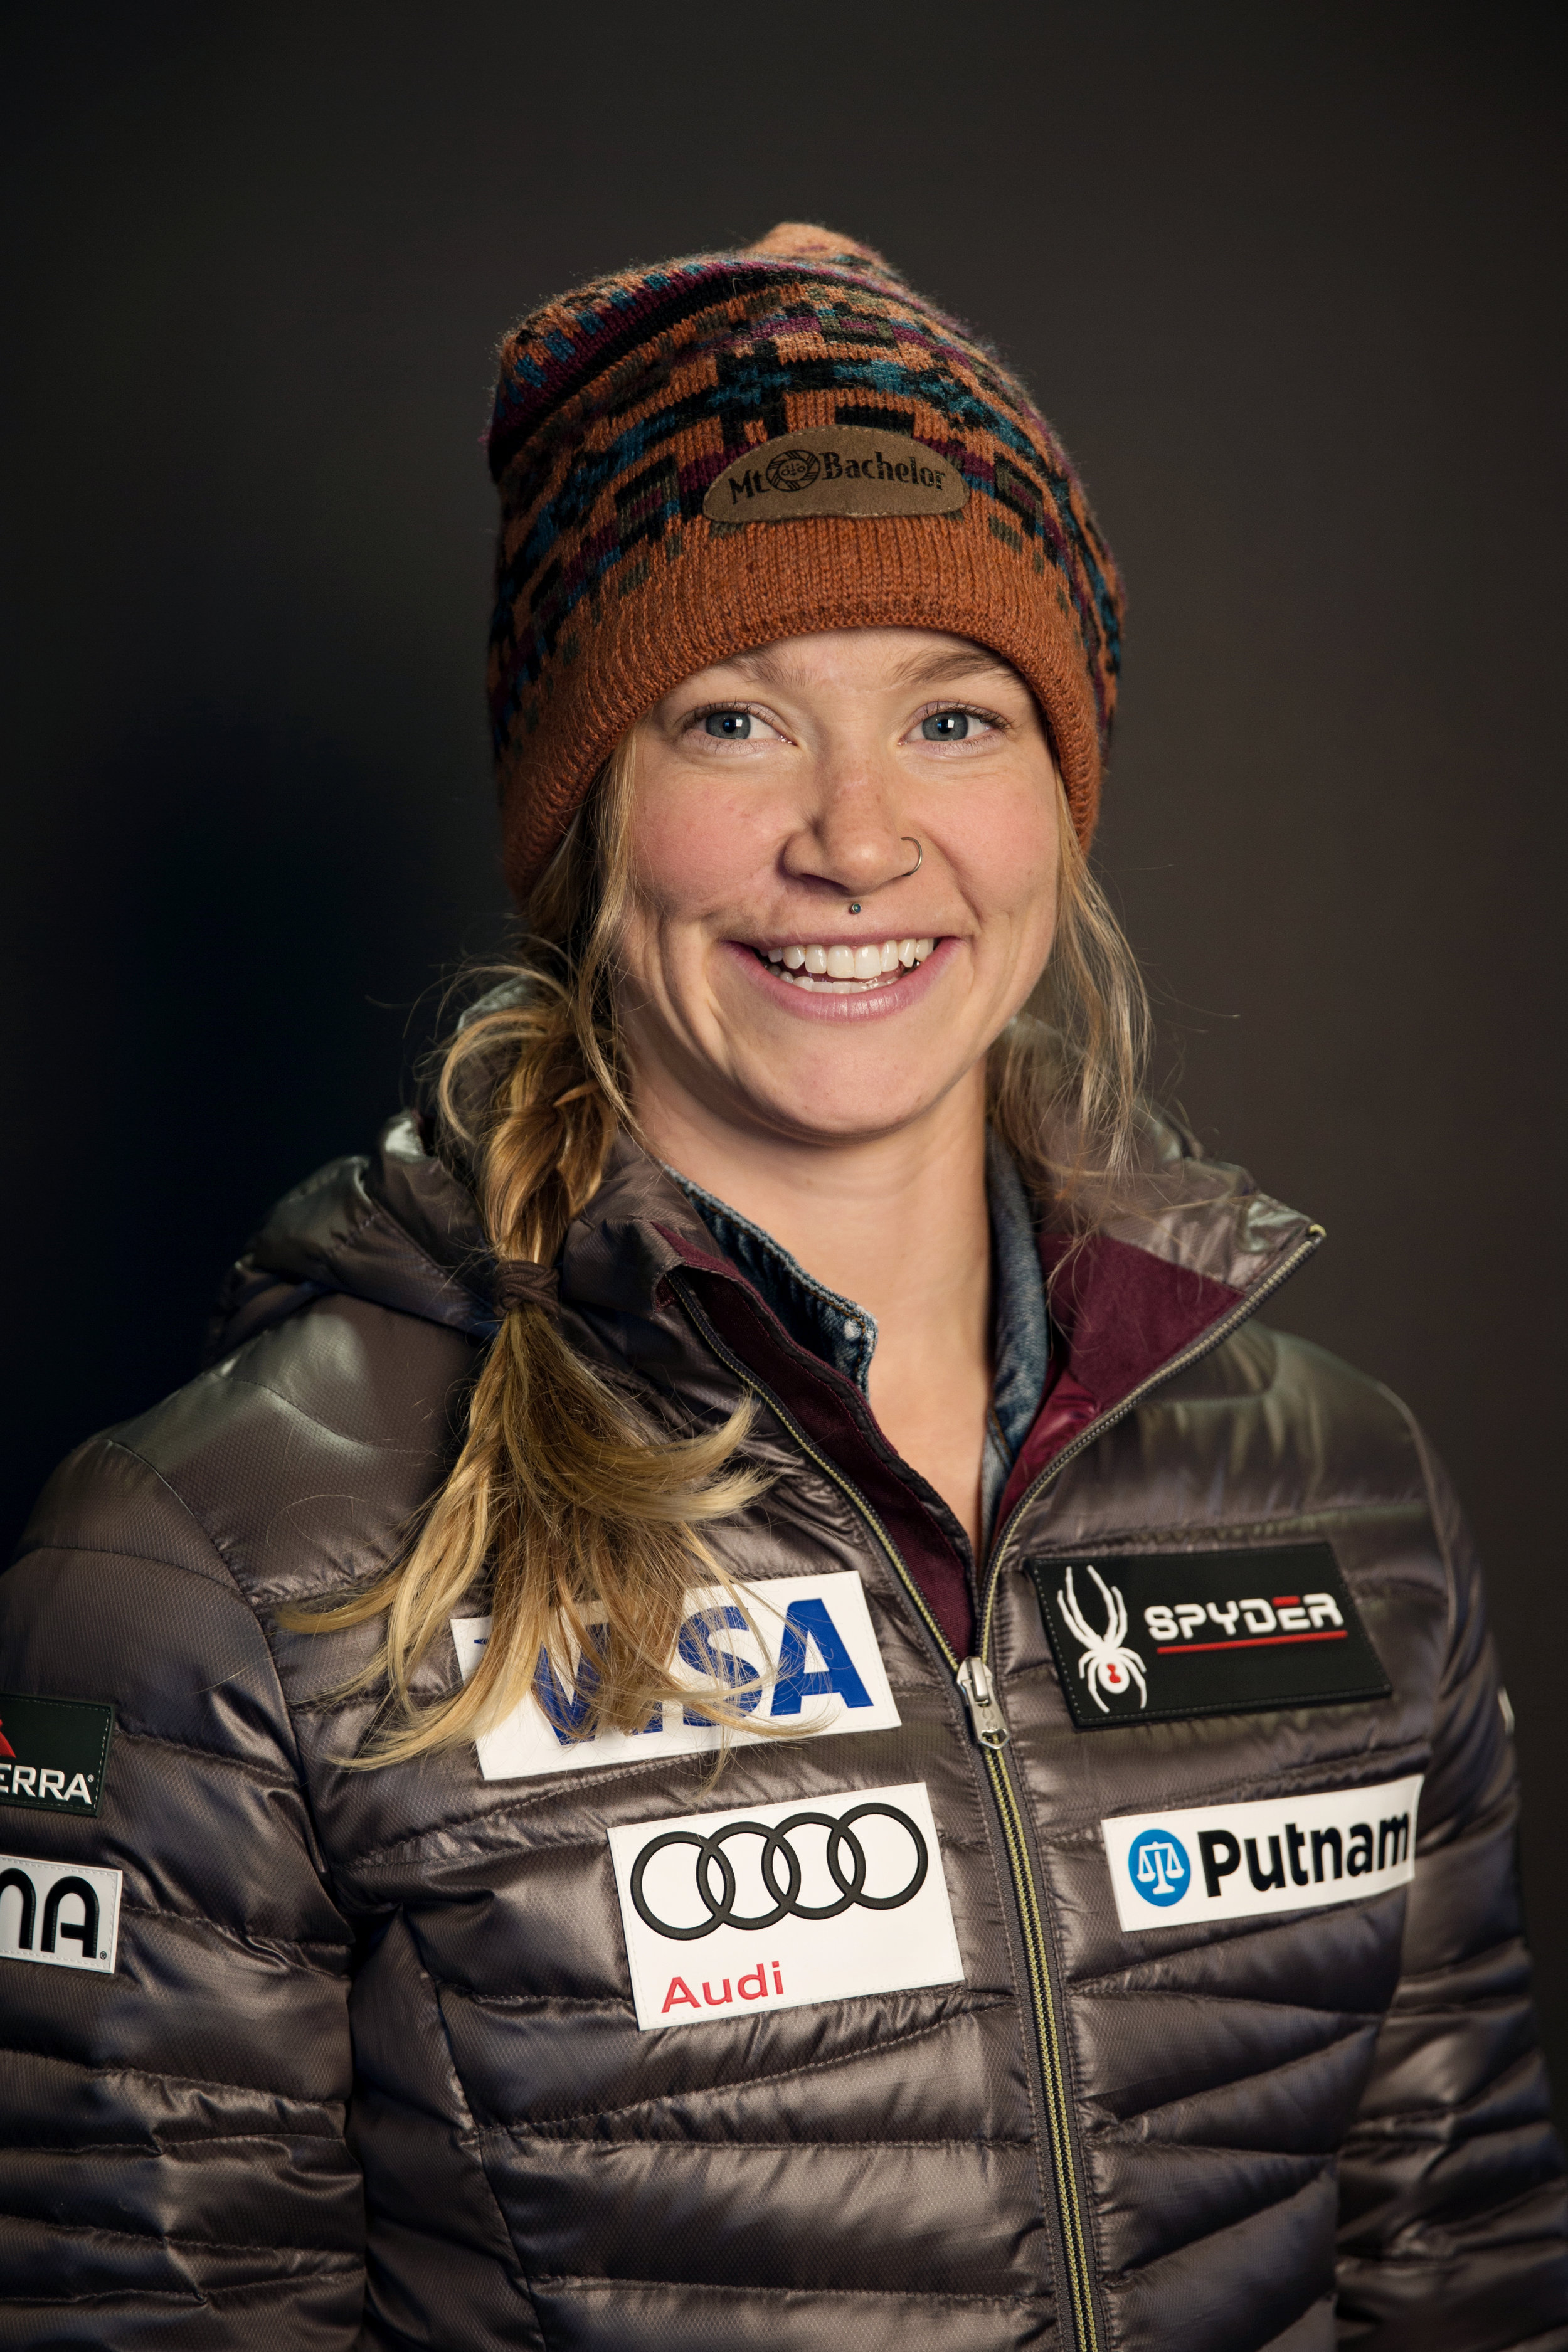 LAURENNE ROSS - Artist. Musician. Valedictorian. Environmentalist. Ski racer. Olympian. These are a just a few of the words we use to describe Laurenne.Laurenne fought her way back from an injury and made the 2018 Winter Olympic Team for the Pyeongchang, South Korea Olympic Winter Games. She placed 15th in the downhill.An incredibly hard worker, Laurenne is a fierce competitor plans on leading the boards in the 2018-2019 season.